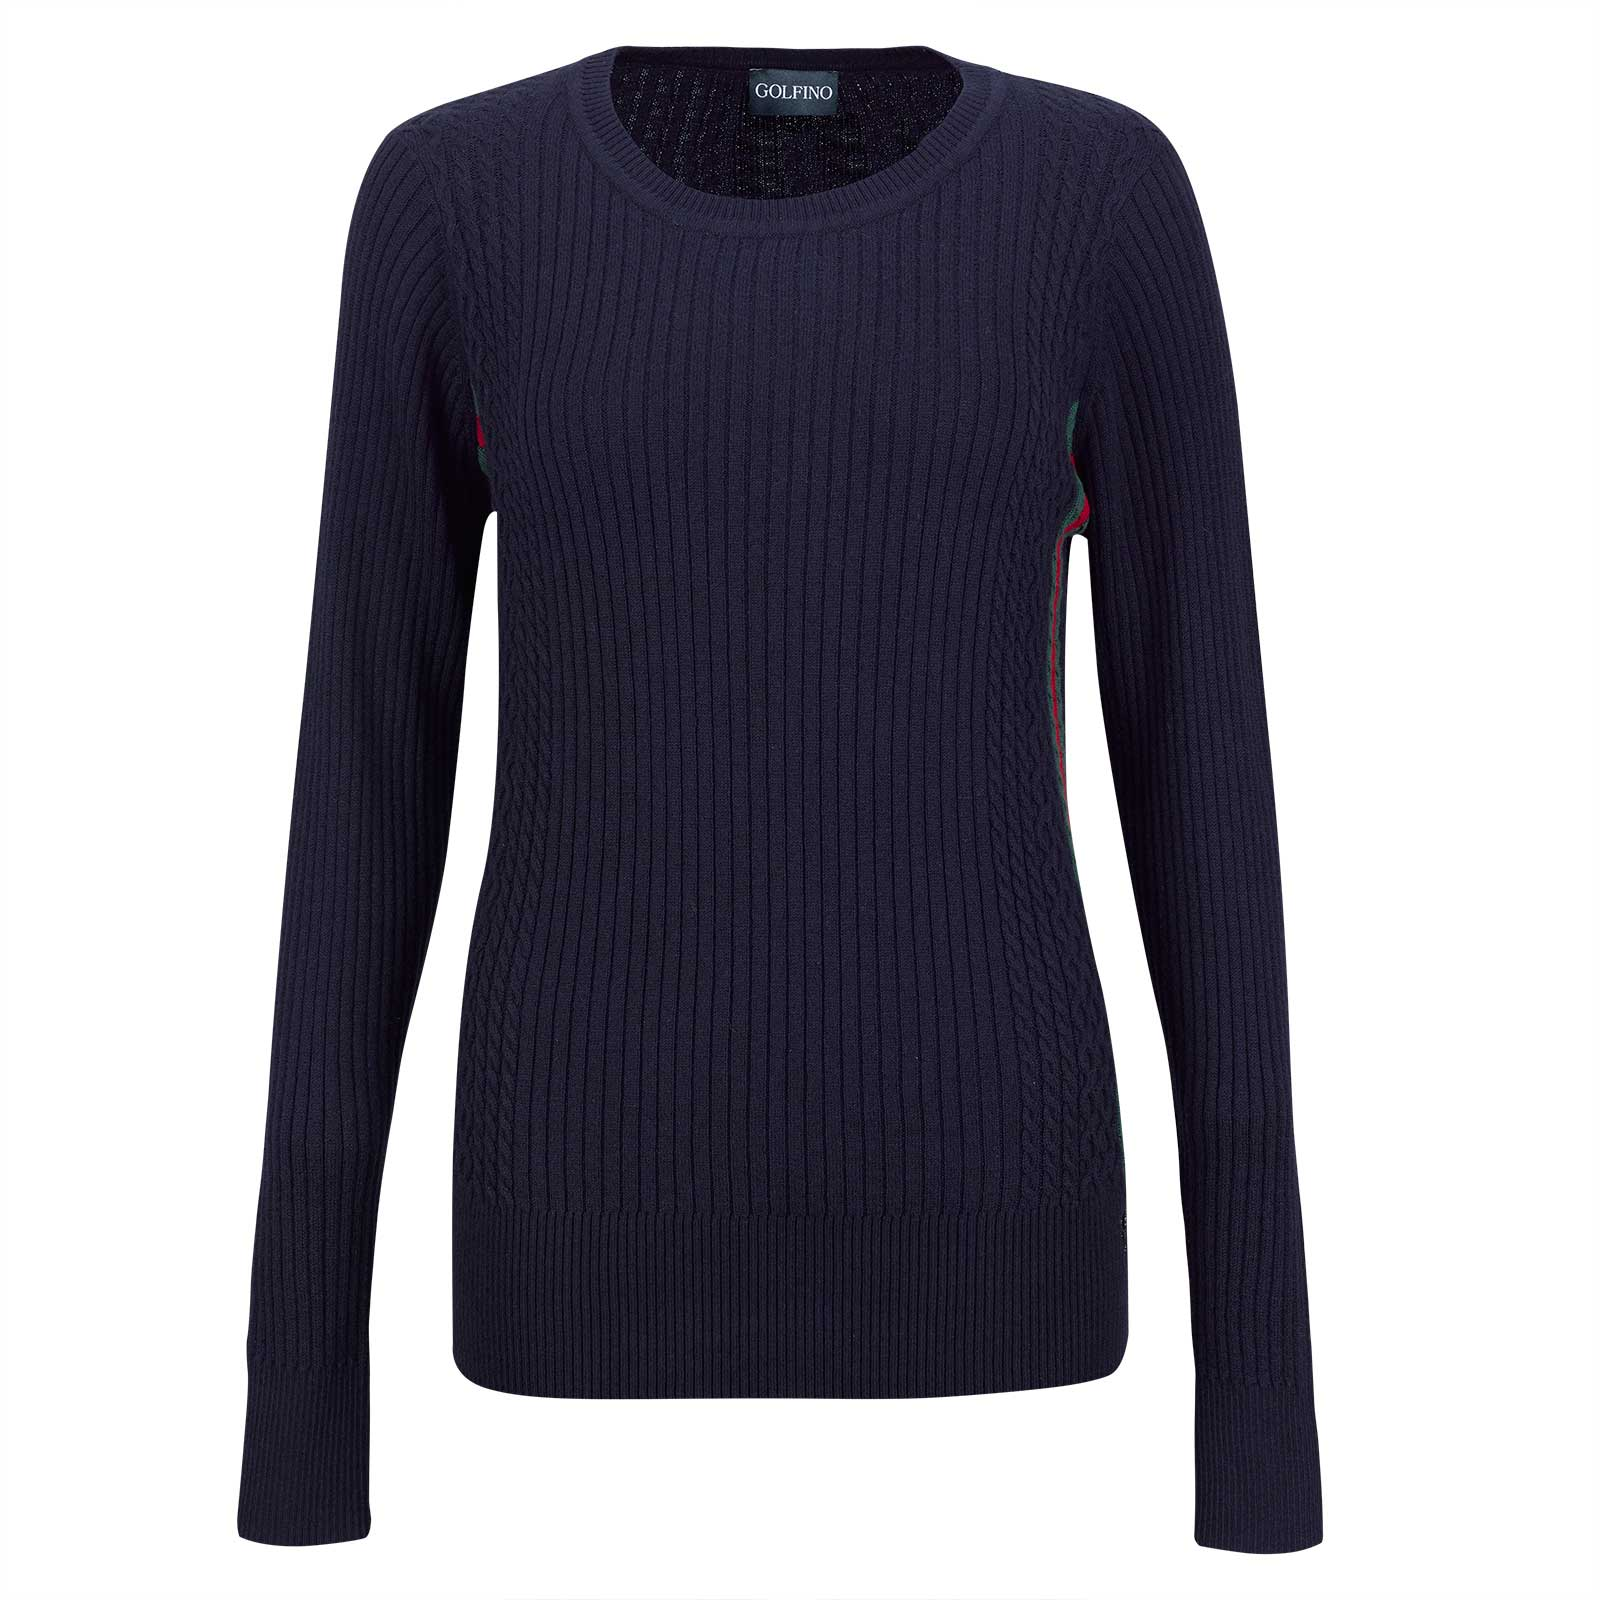 Ladies' cashmere blend sweater with V-neck and cable stitch pattern